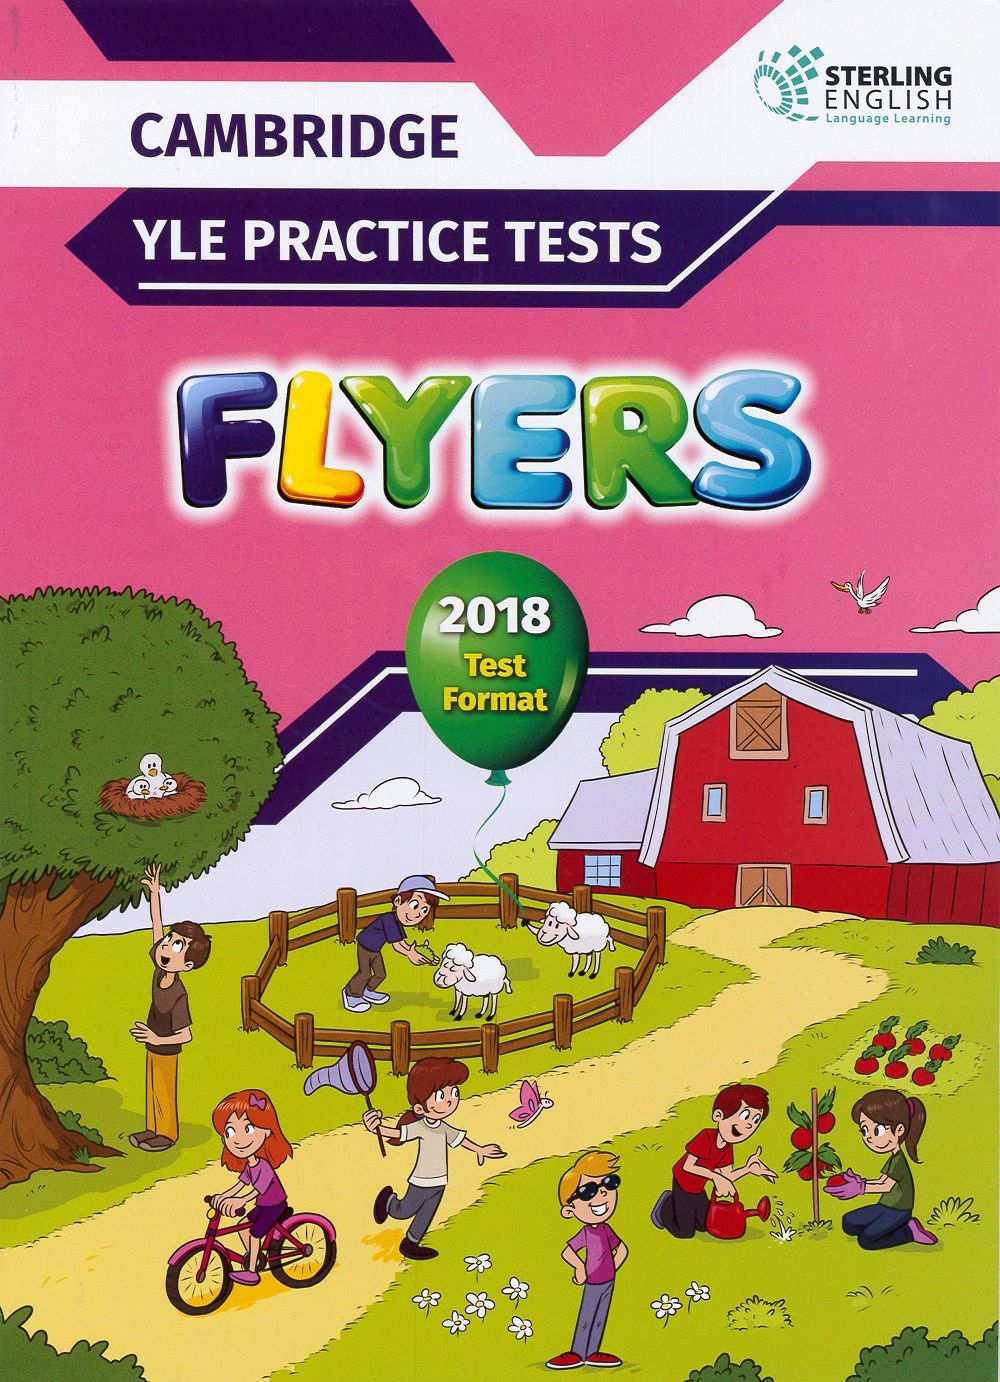 Cambridge YLE Practice Tests Flyers 2018 Test Format Student's Book with MP3 CD & Key(Sterling)